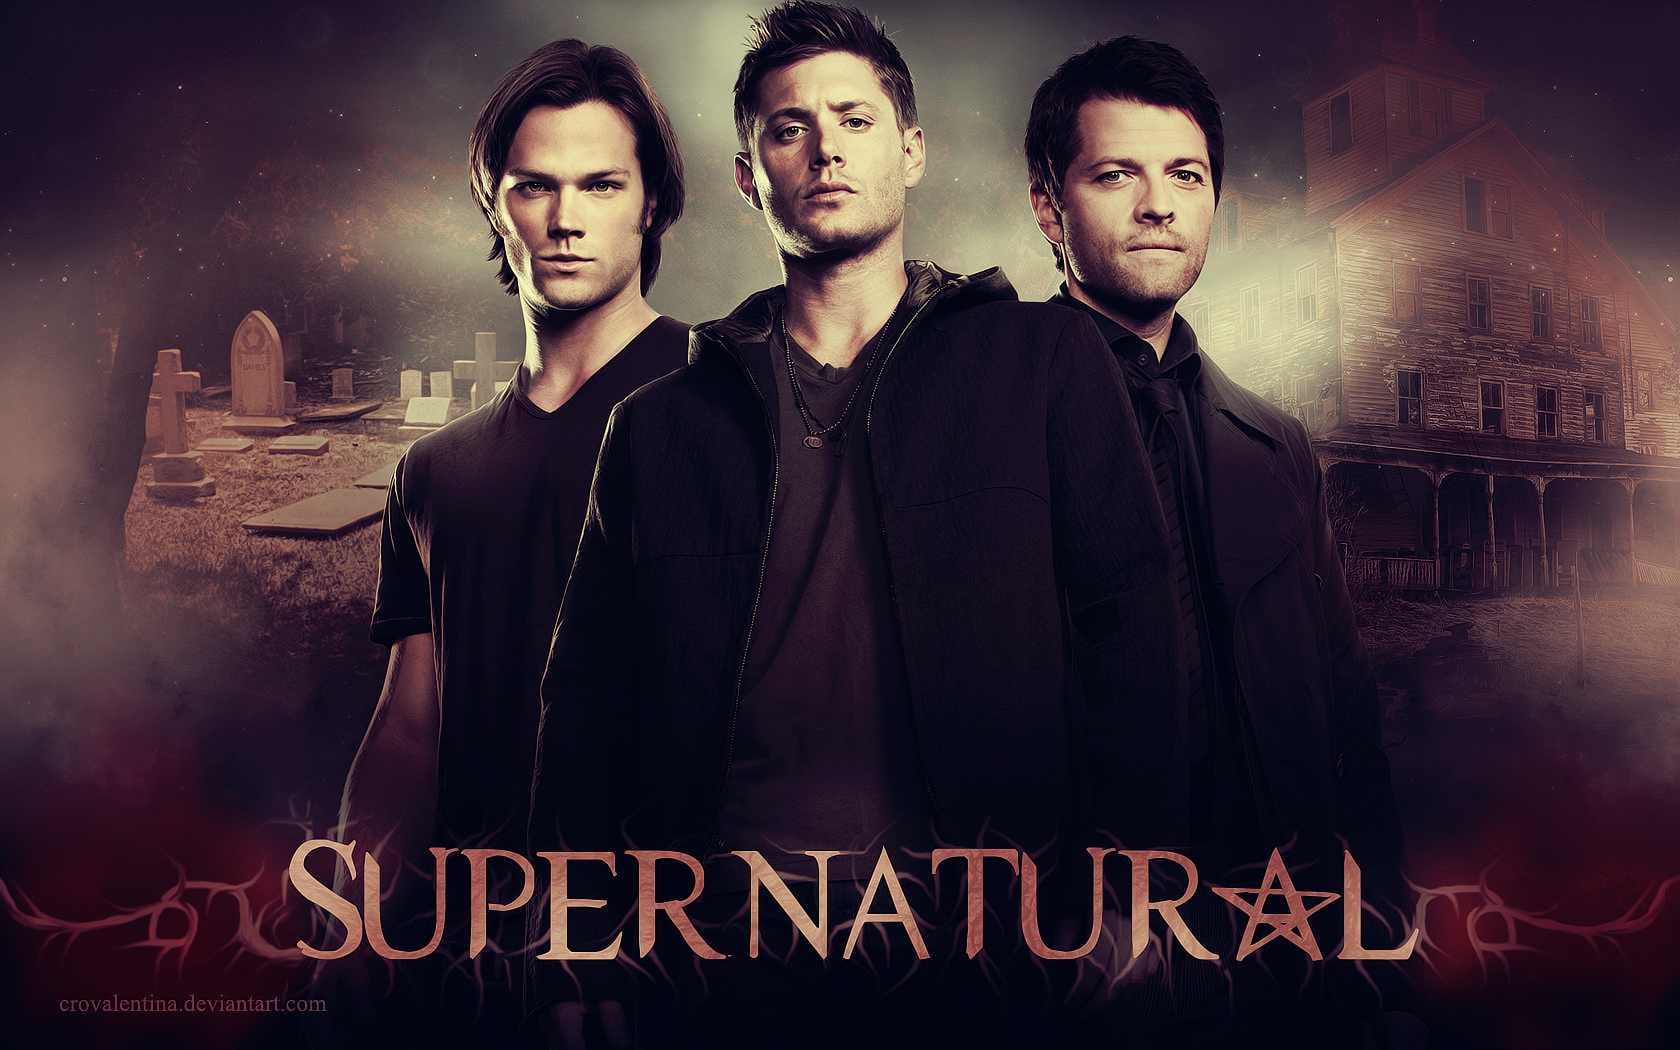 SDCC 2015: Supernatural Panel Gets Kicked in the Balls by Audience Member Question